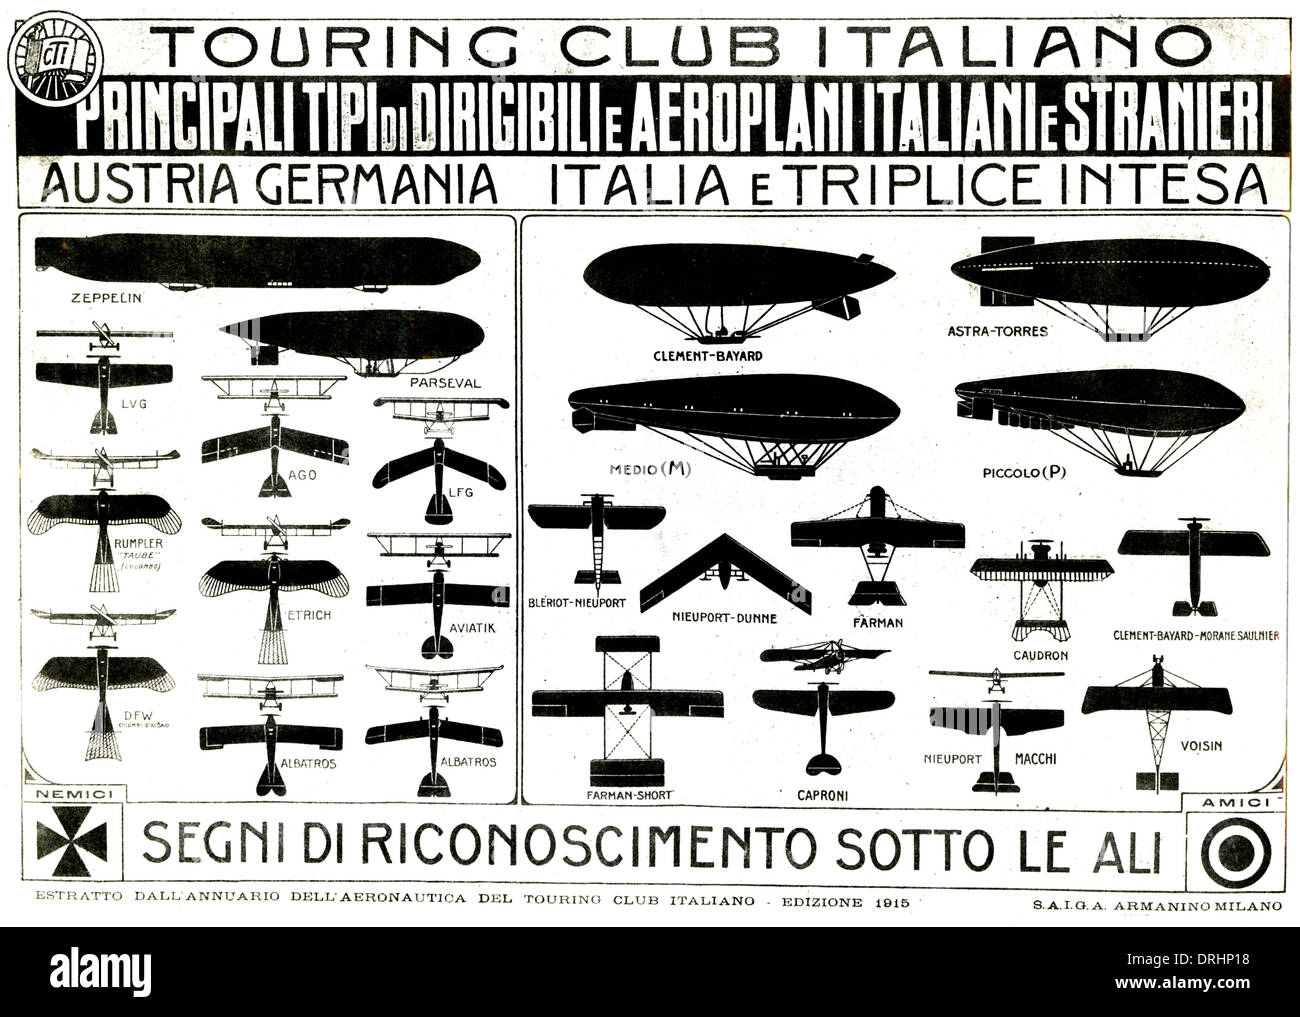 Touring Club Italiano chart, aeroplanes and airships - Stock Image